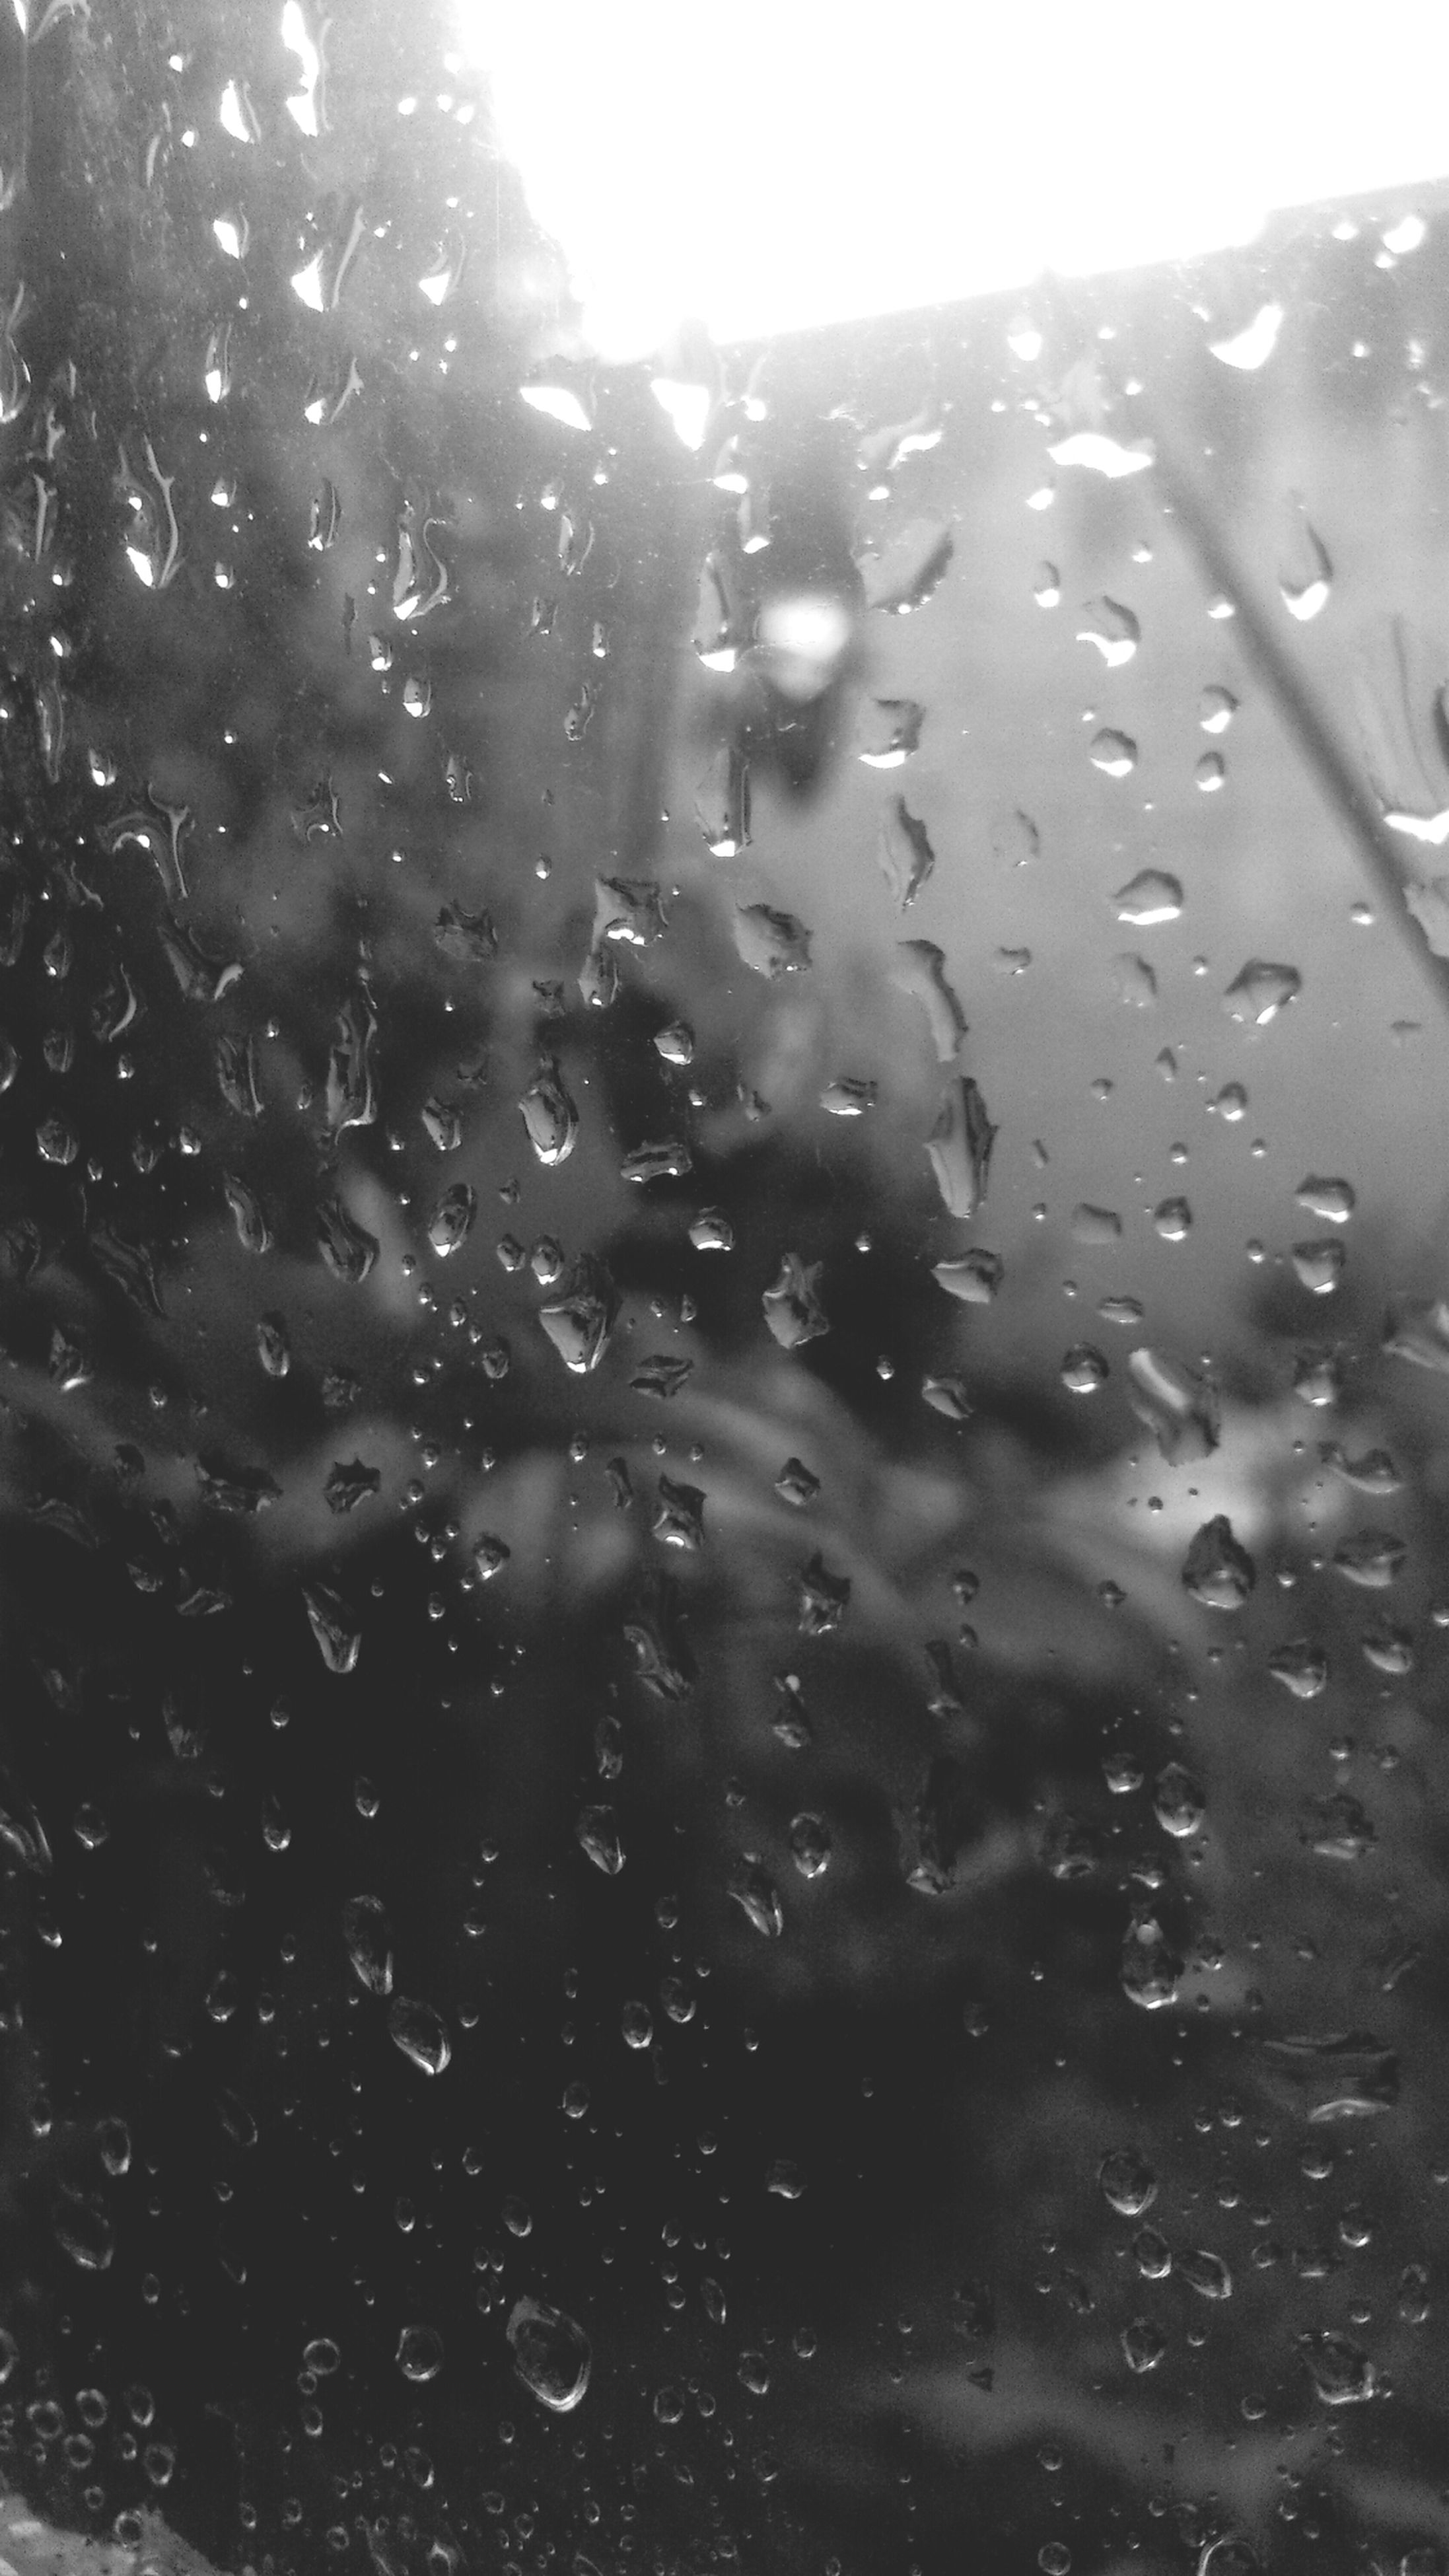 drop, wet, water, window, rain, raindrop, transparent, weather, glass - material, season, close-up, focus on foreground, nature, sky, indoors, day, full frame, tree, no people, backgrounds